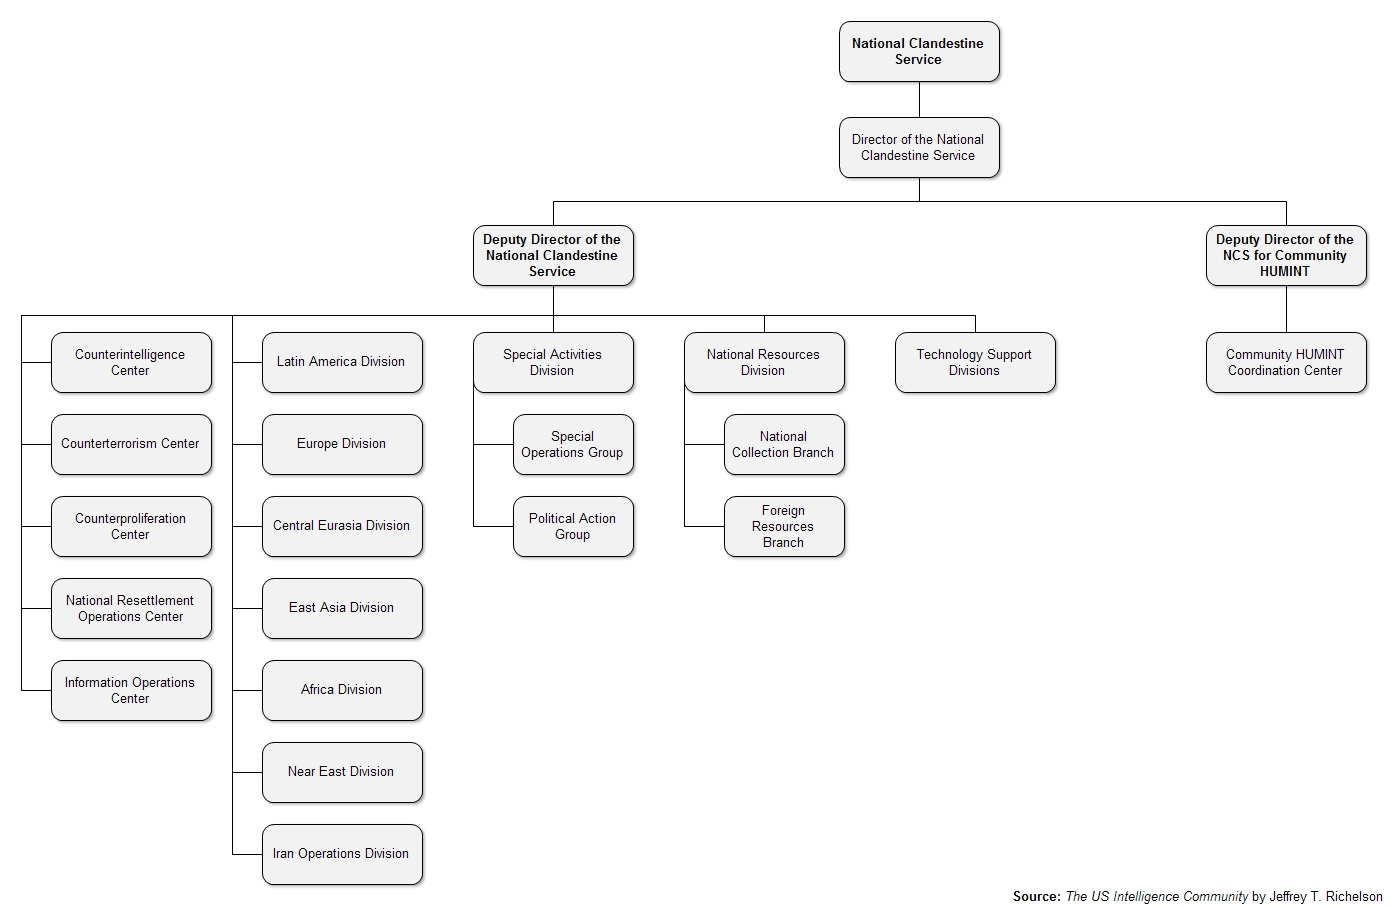 Organizational Chart For Word: Organizational Chart of the CIA7s National Clandestine ,Chart